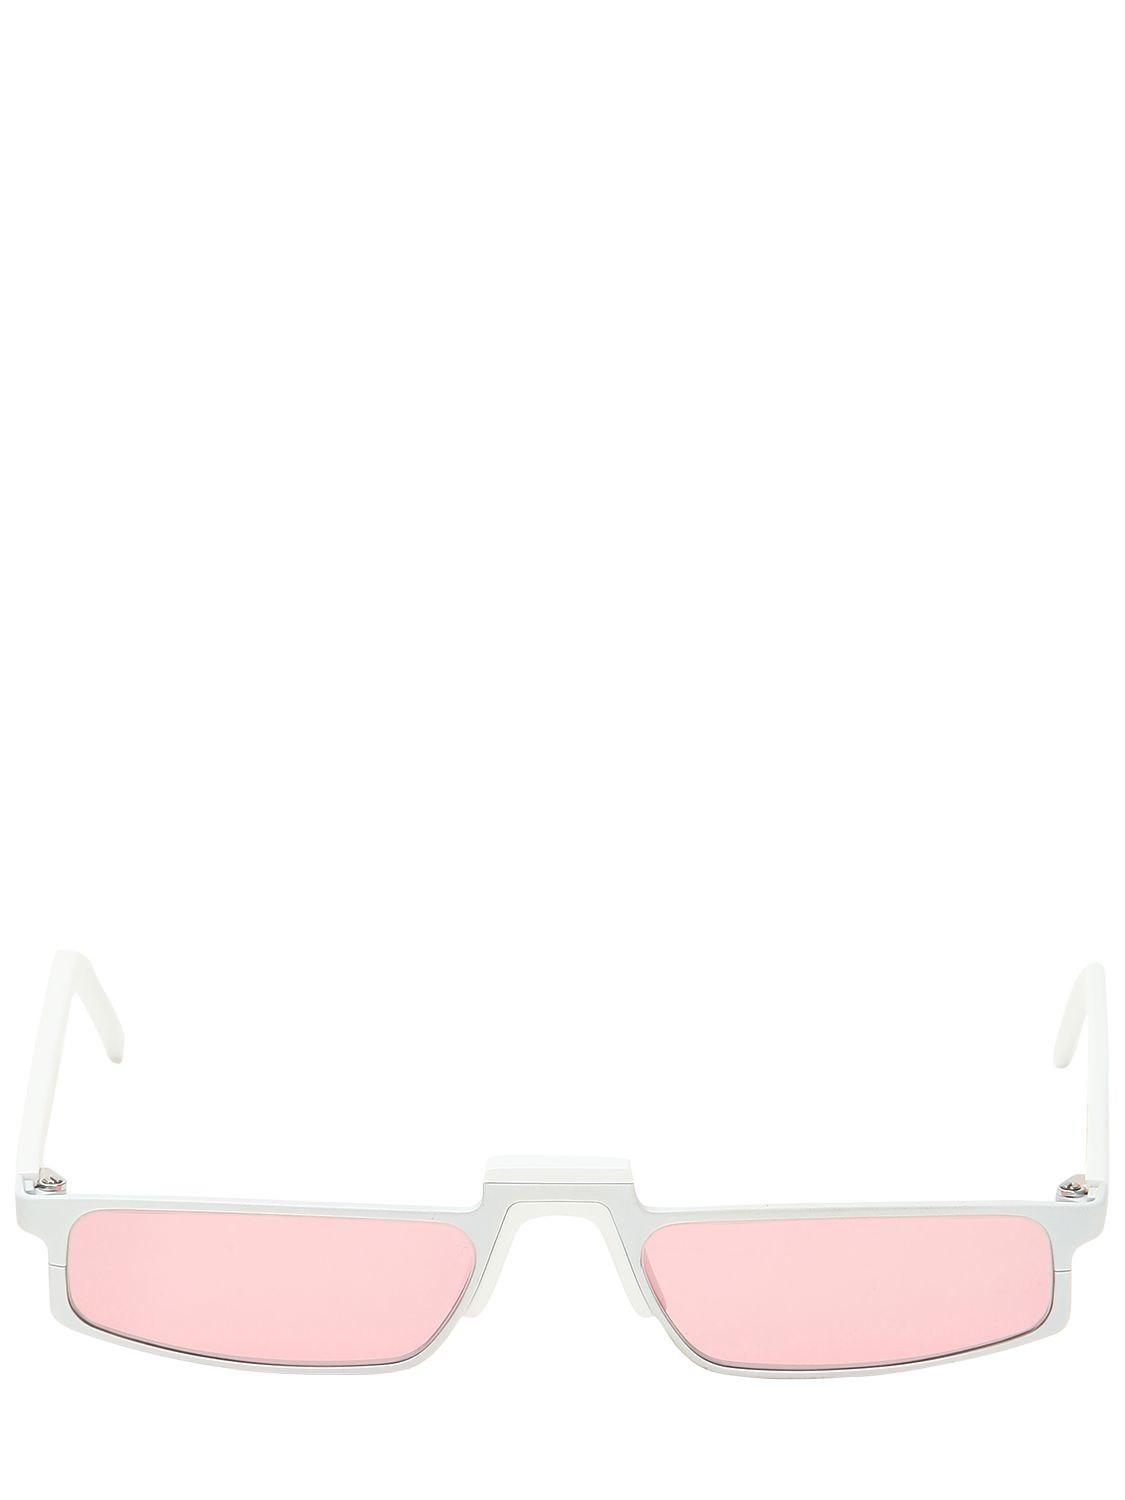 6838b21377d00 Lyst - Andy Wolf Rihanna Sunglasses in White